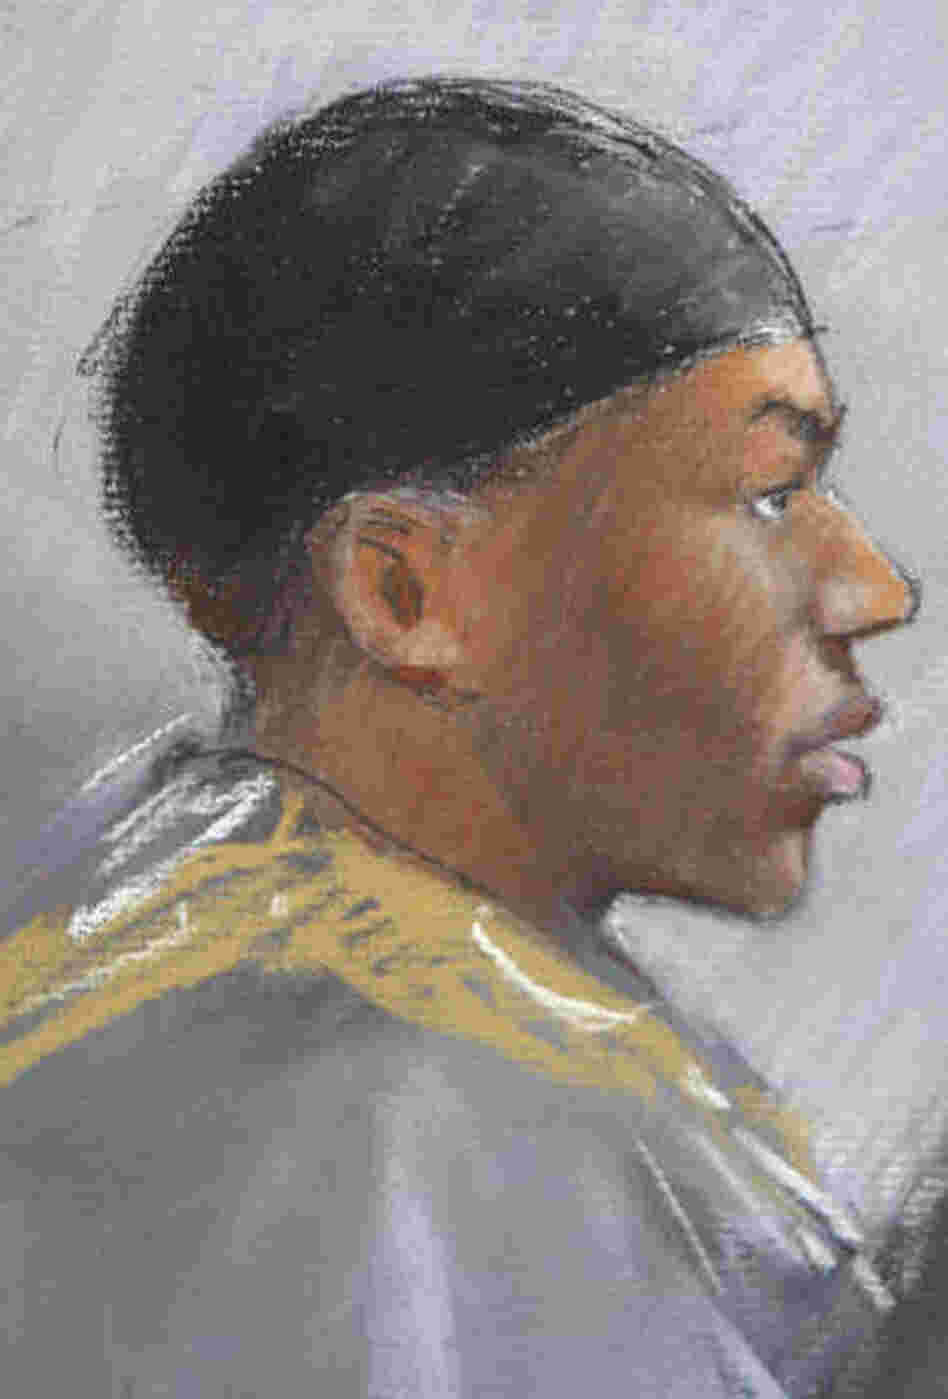 A courtroom drawing, from earlier this week, of Umar Farouk Abdulmutallab.